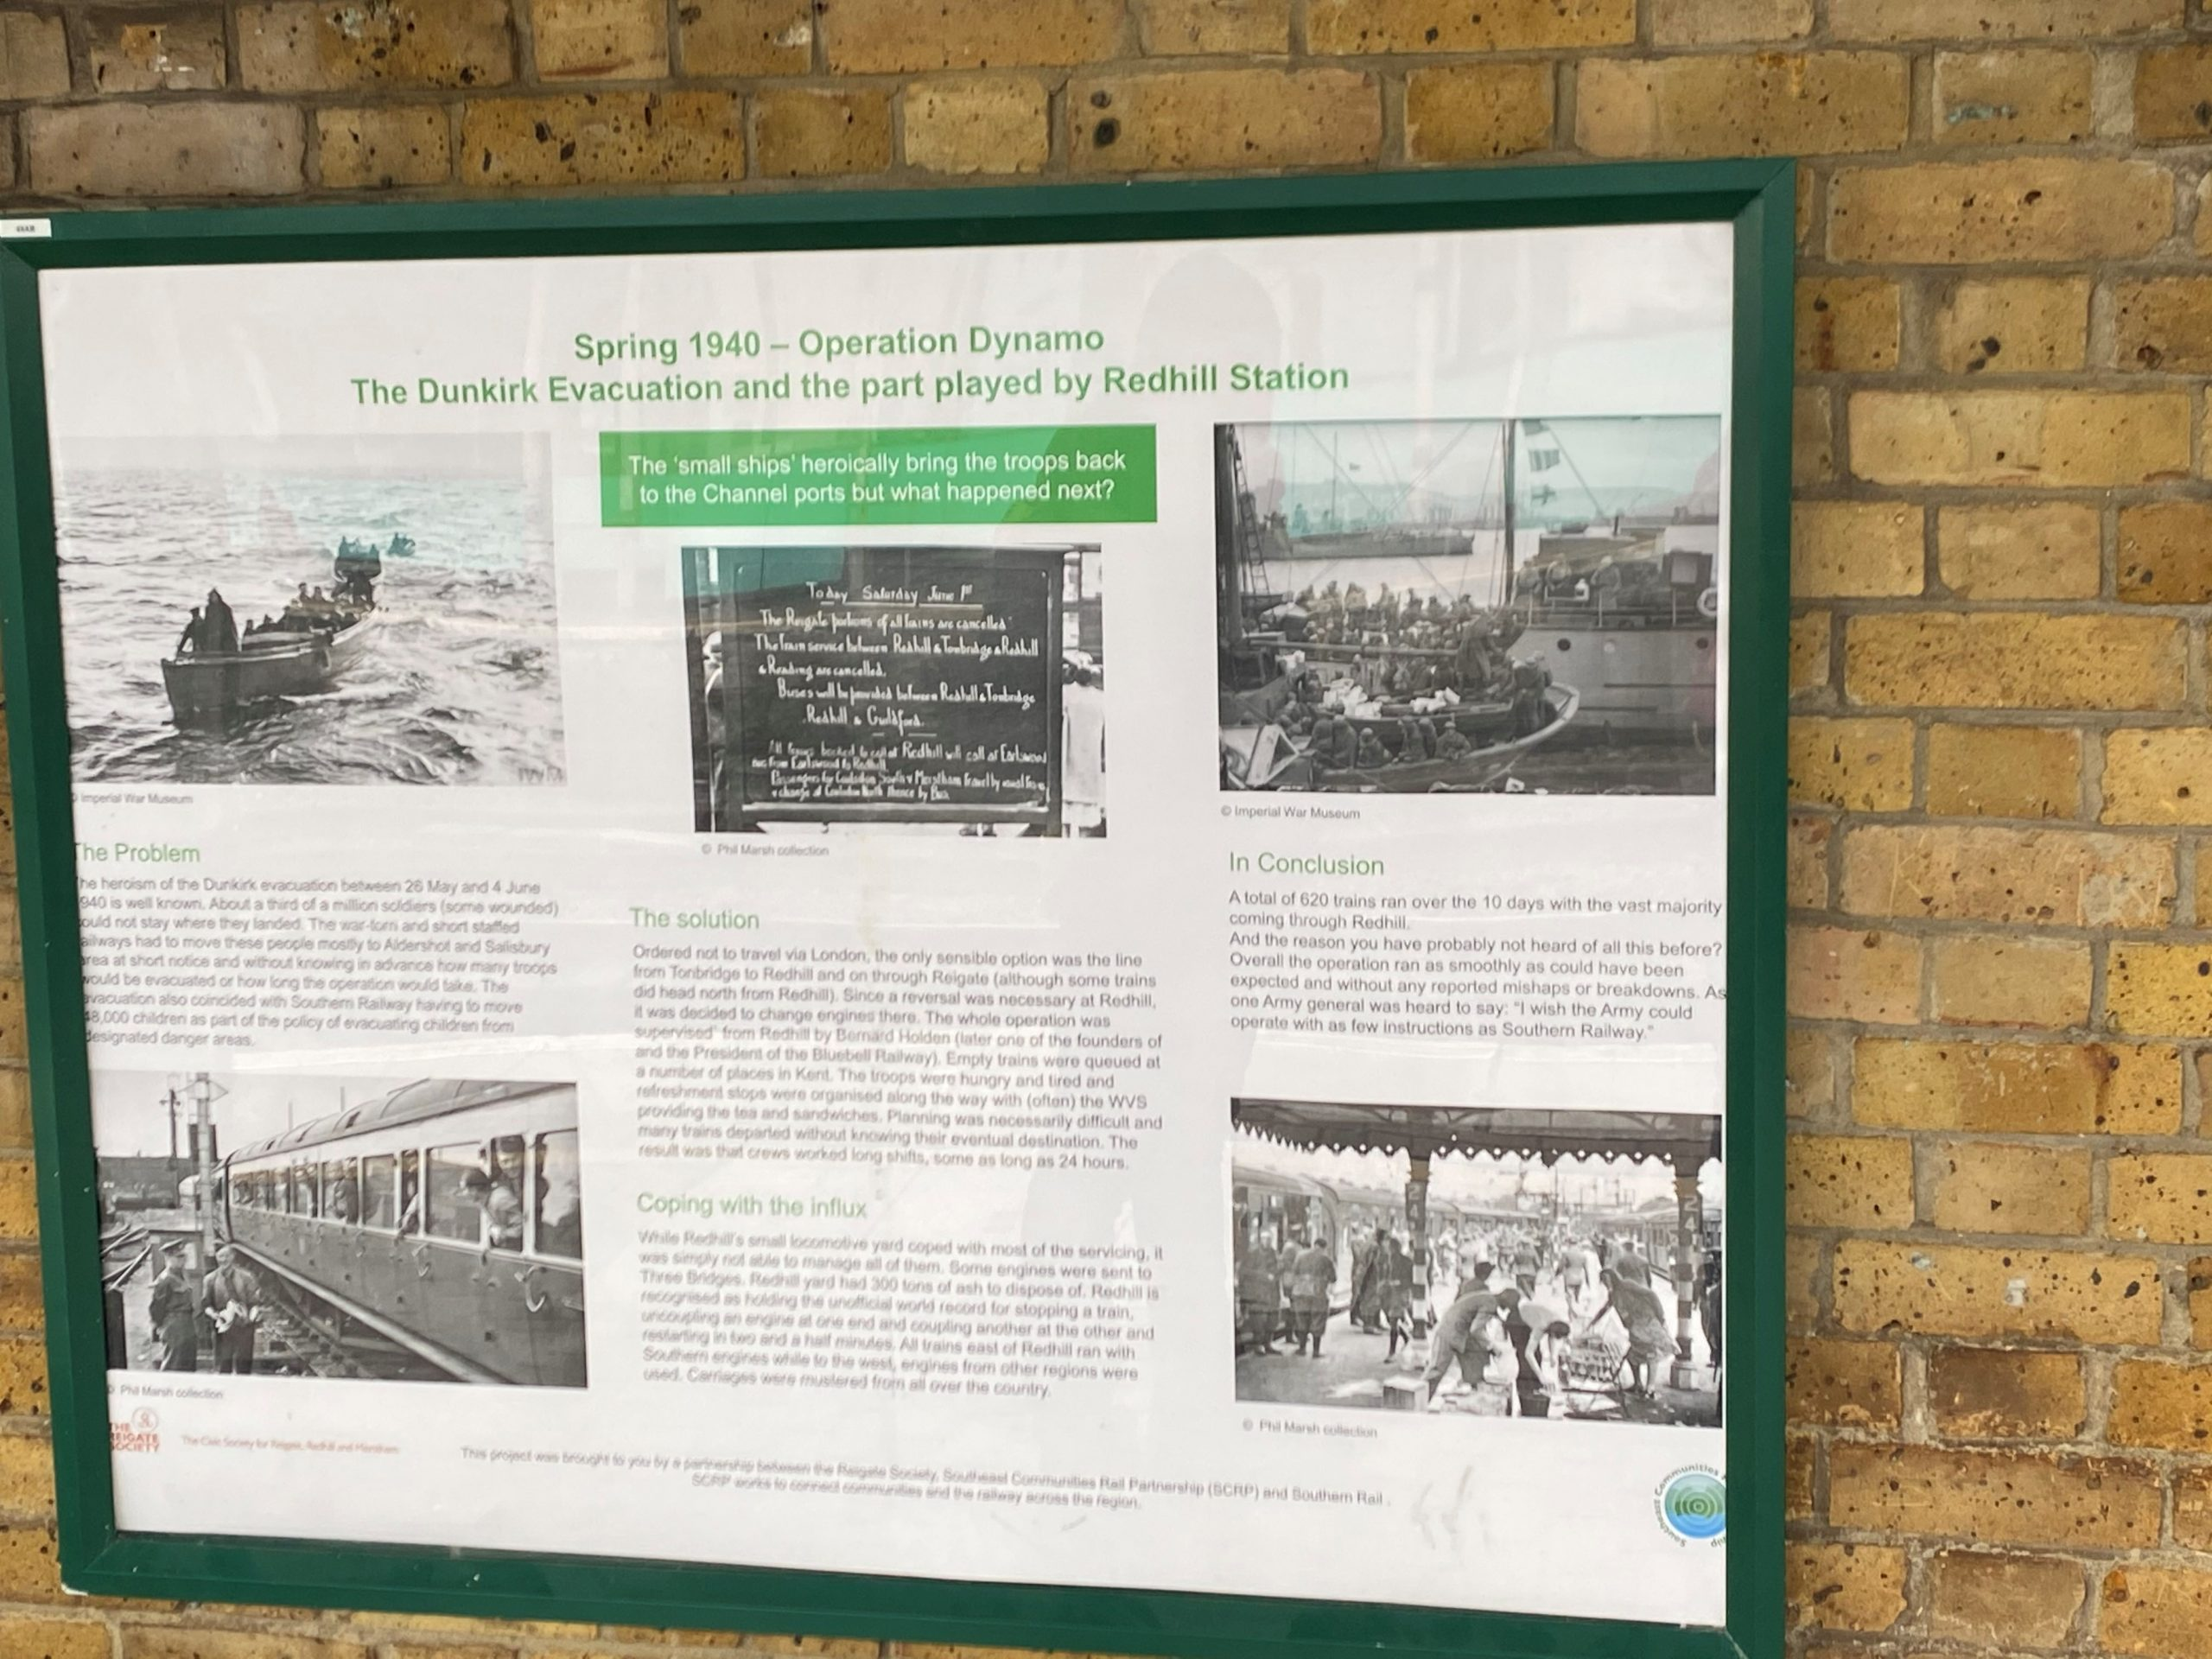 A fascinating history project is on display at Redhill Station